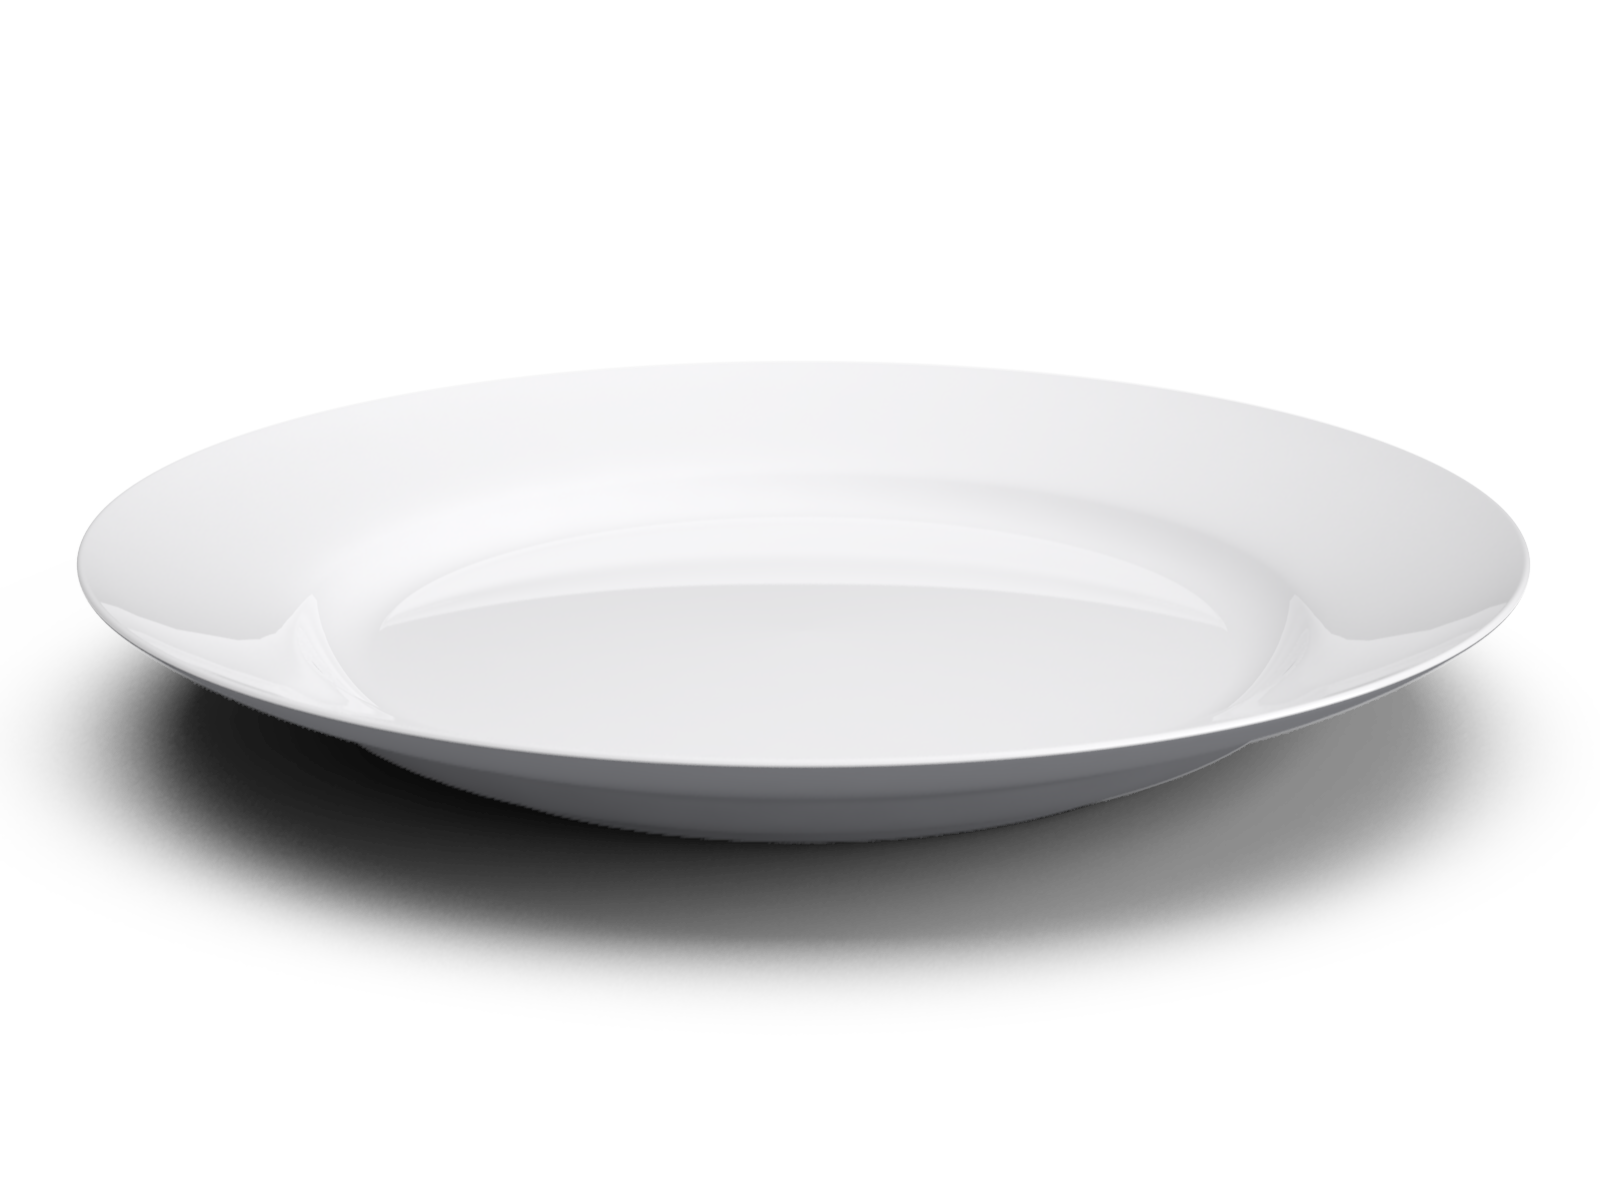 Plate png. White basic with shadow